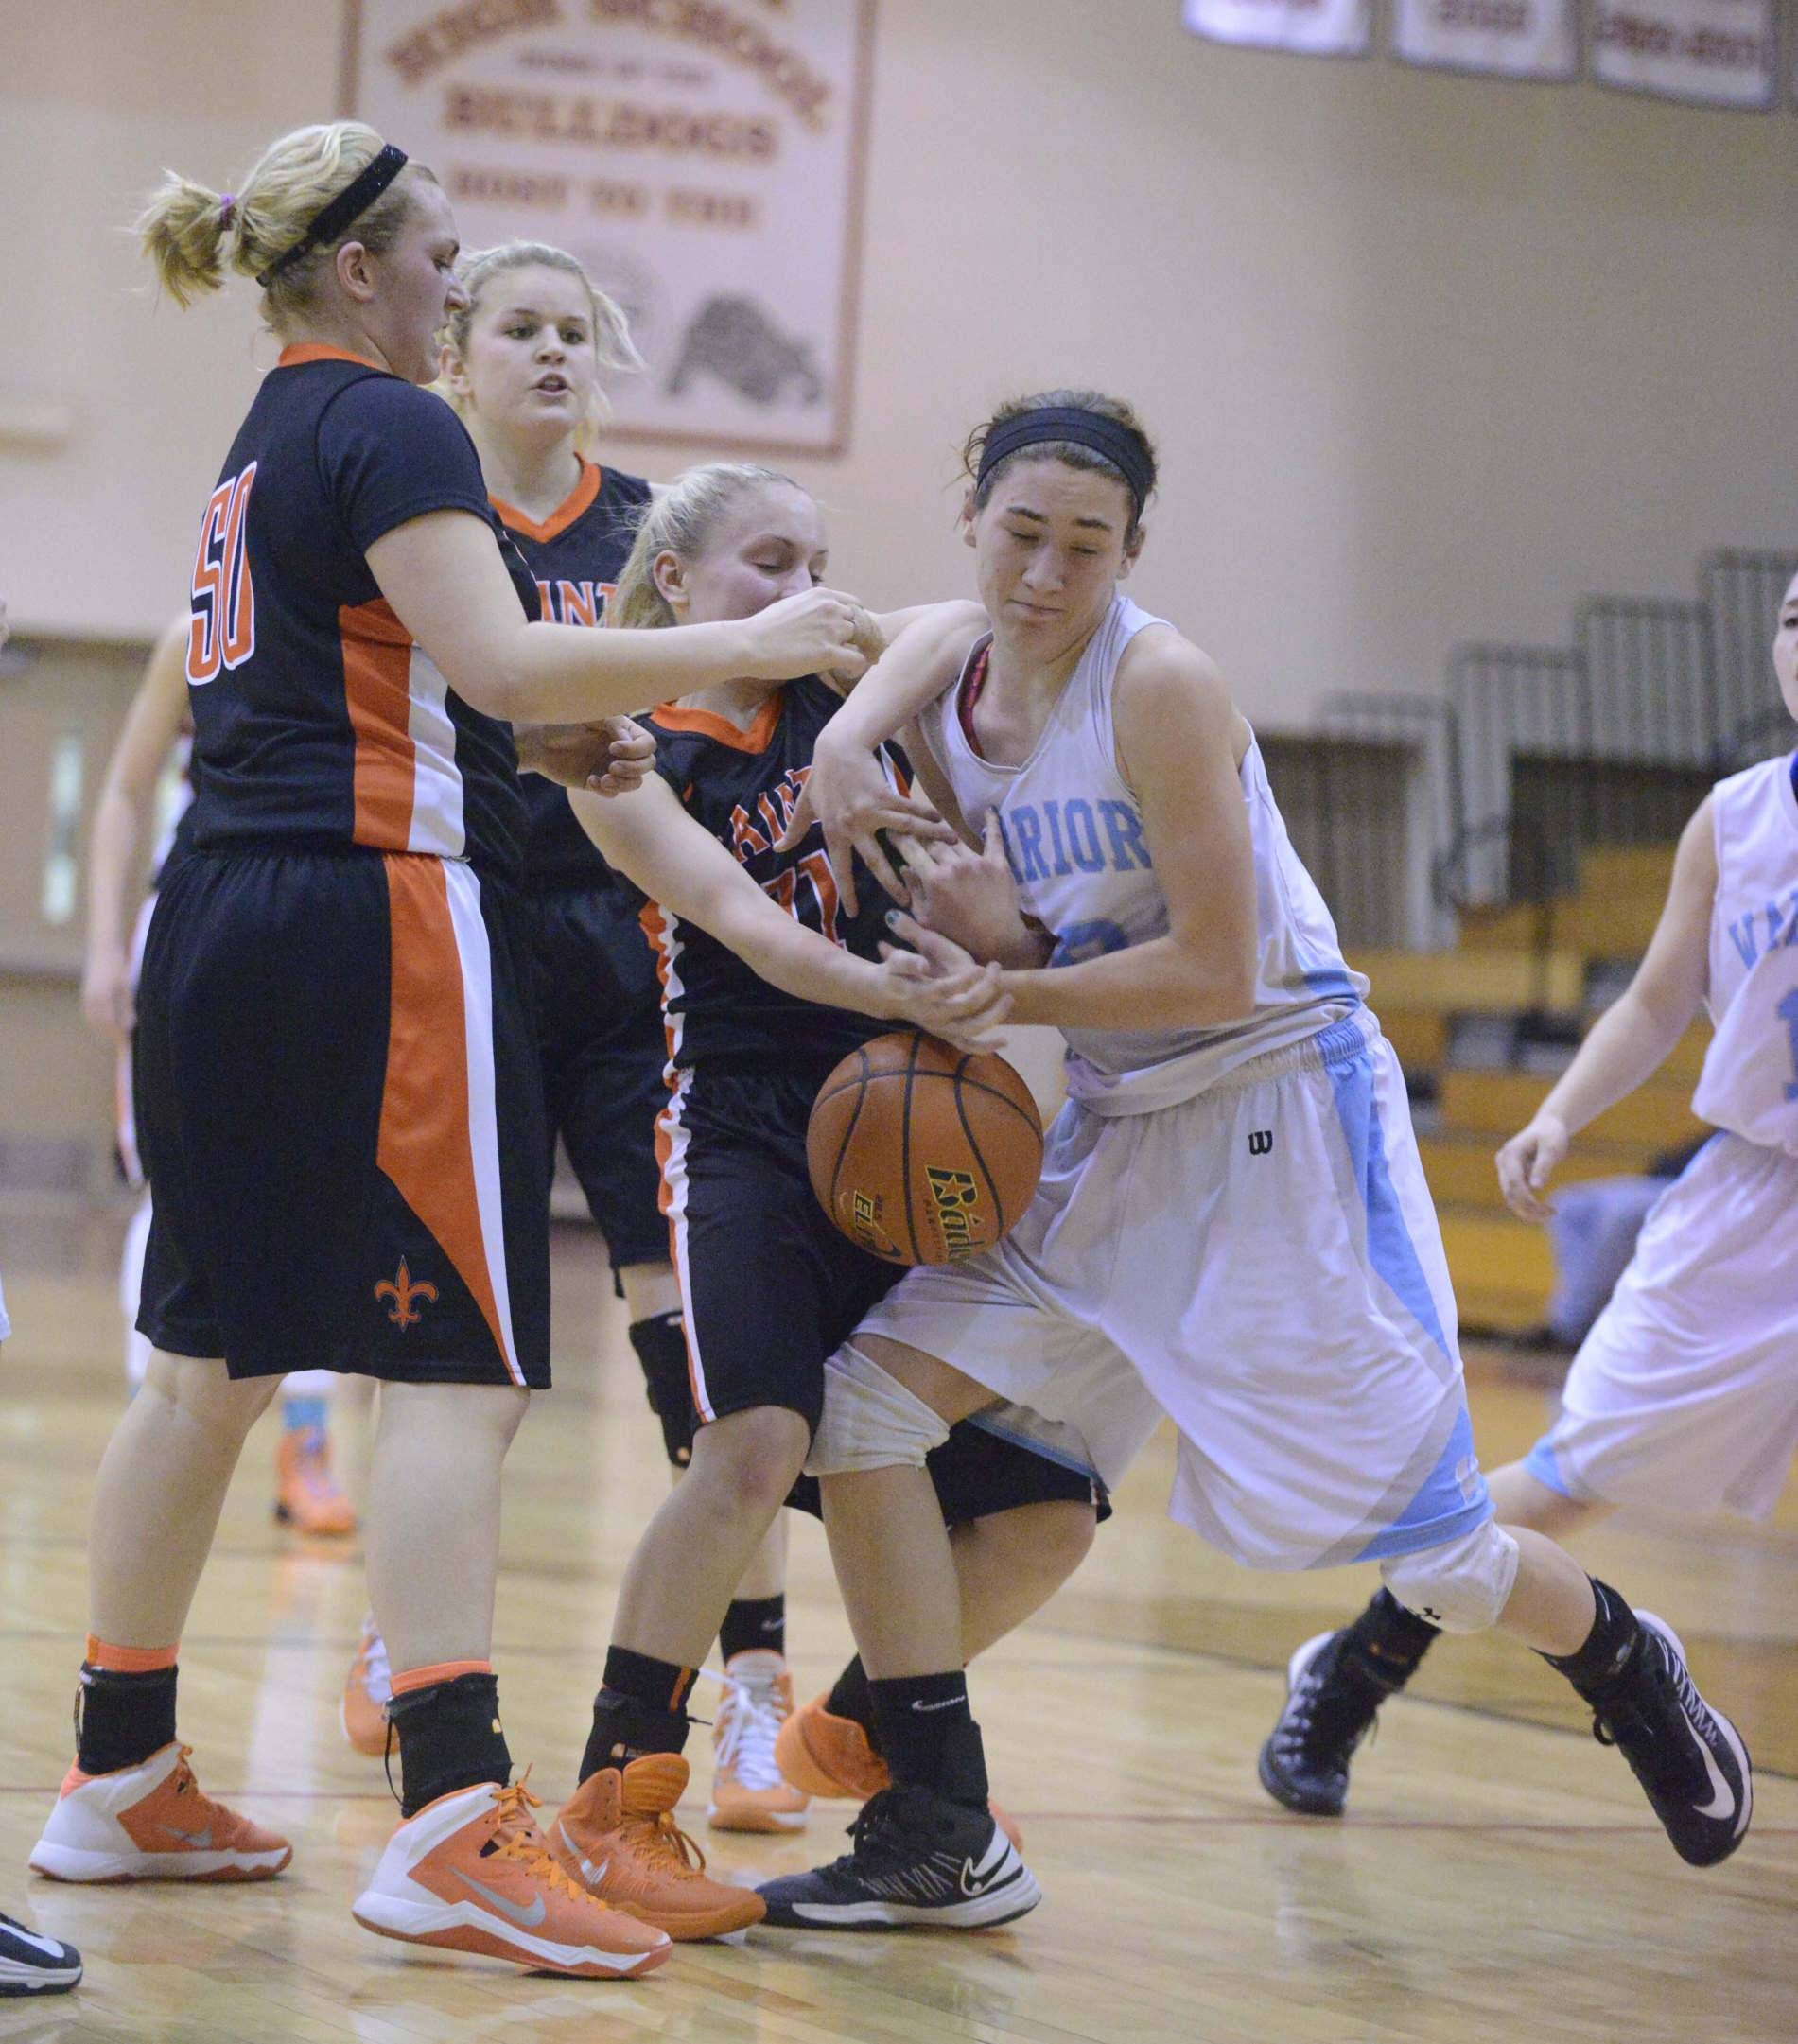 Images from the St. Charles East vs. Willowbrook girls basketball game Tuesday, February 18, 2014.